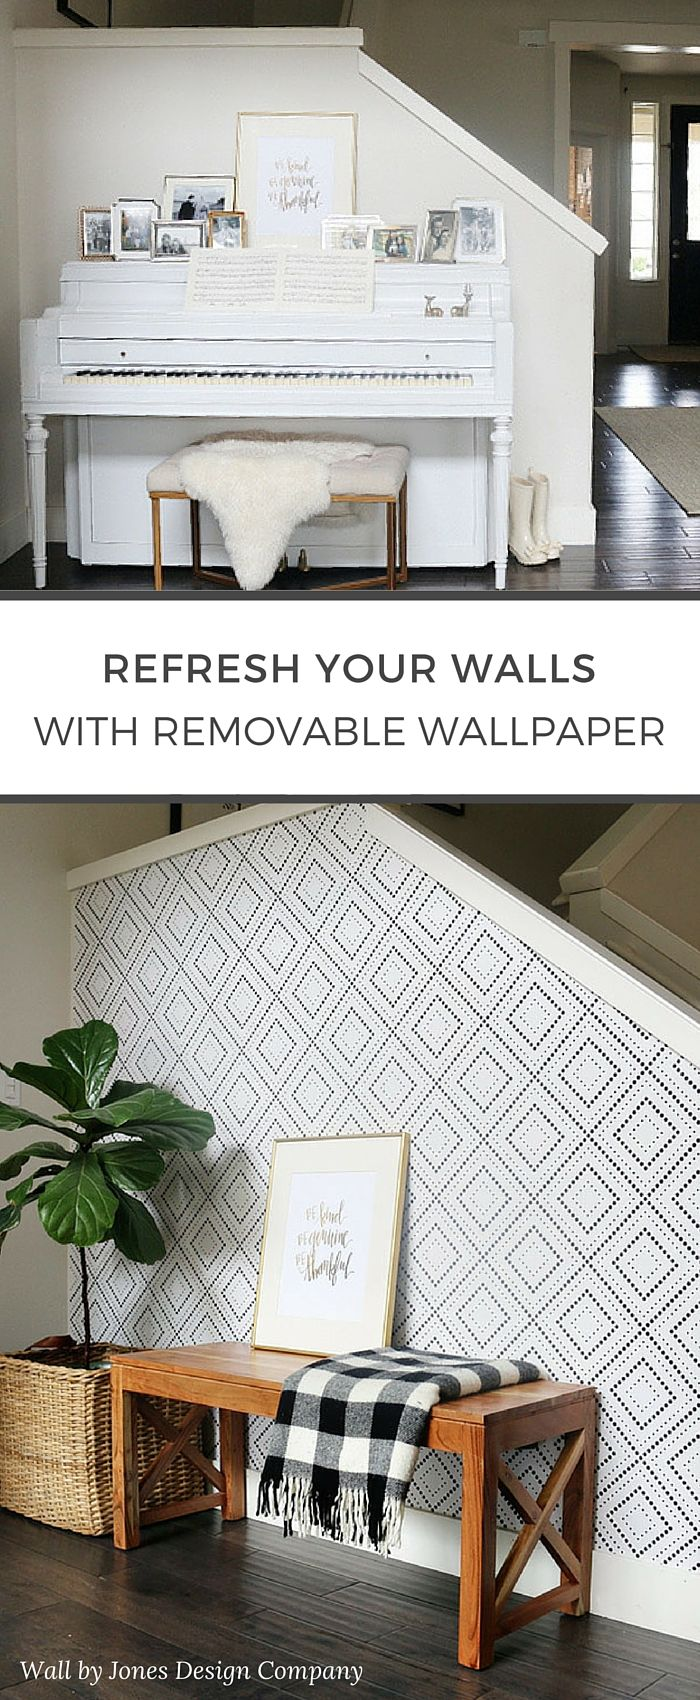 Bring A Little Love To Your Walls This Spring With Over 200 Removable And Reusable Wallpaper Designs Wallsneedlove Makes High Impact Design As Easy As